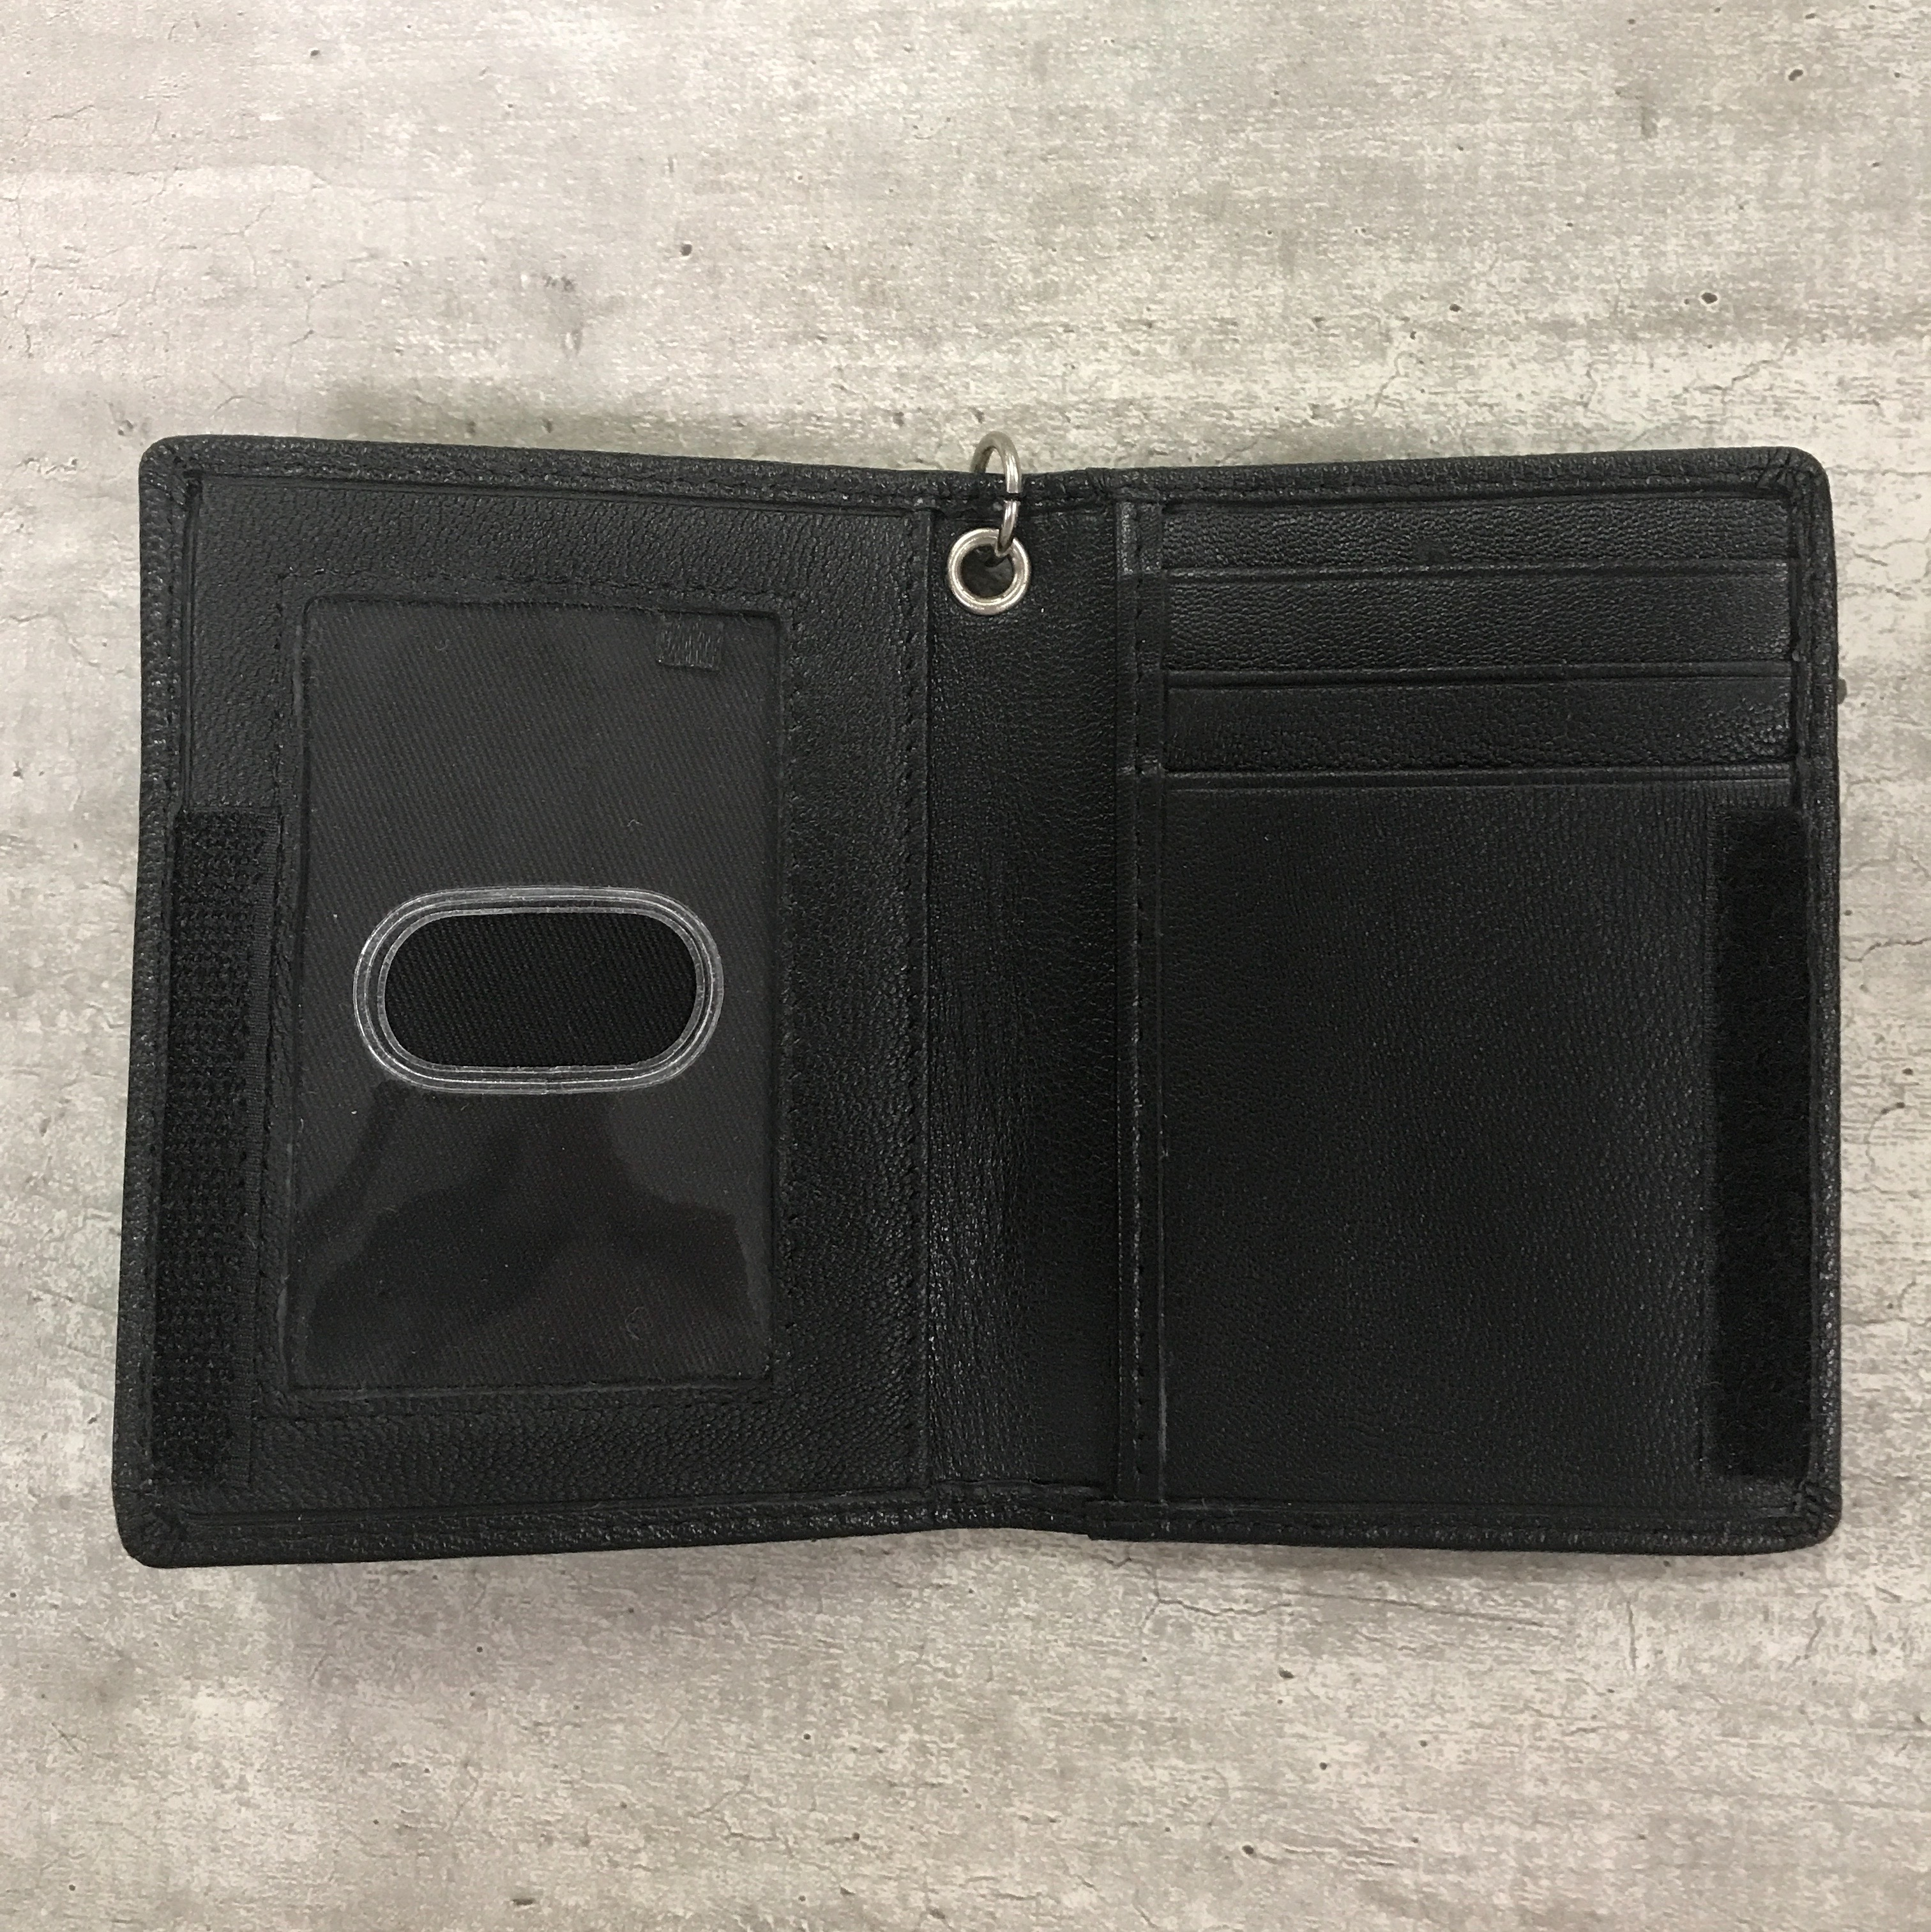 Alternative Image for the Leather ID Holder, Meredith College product